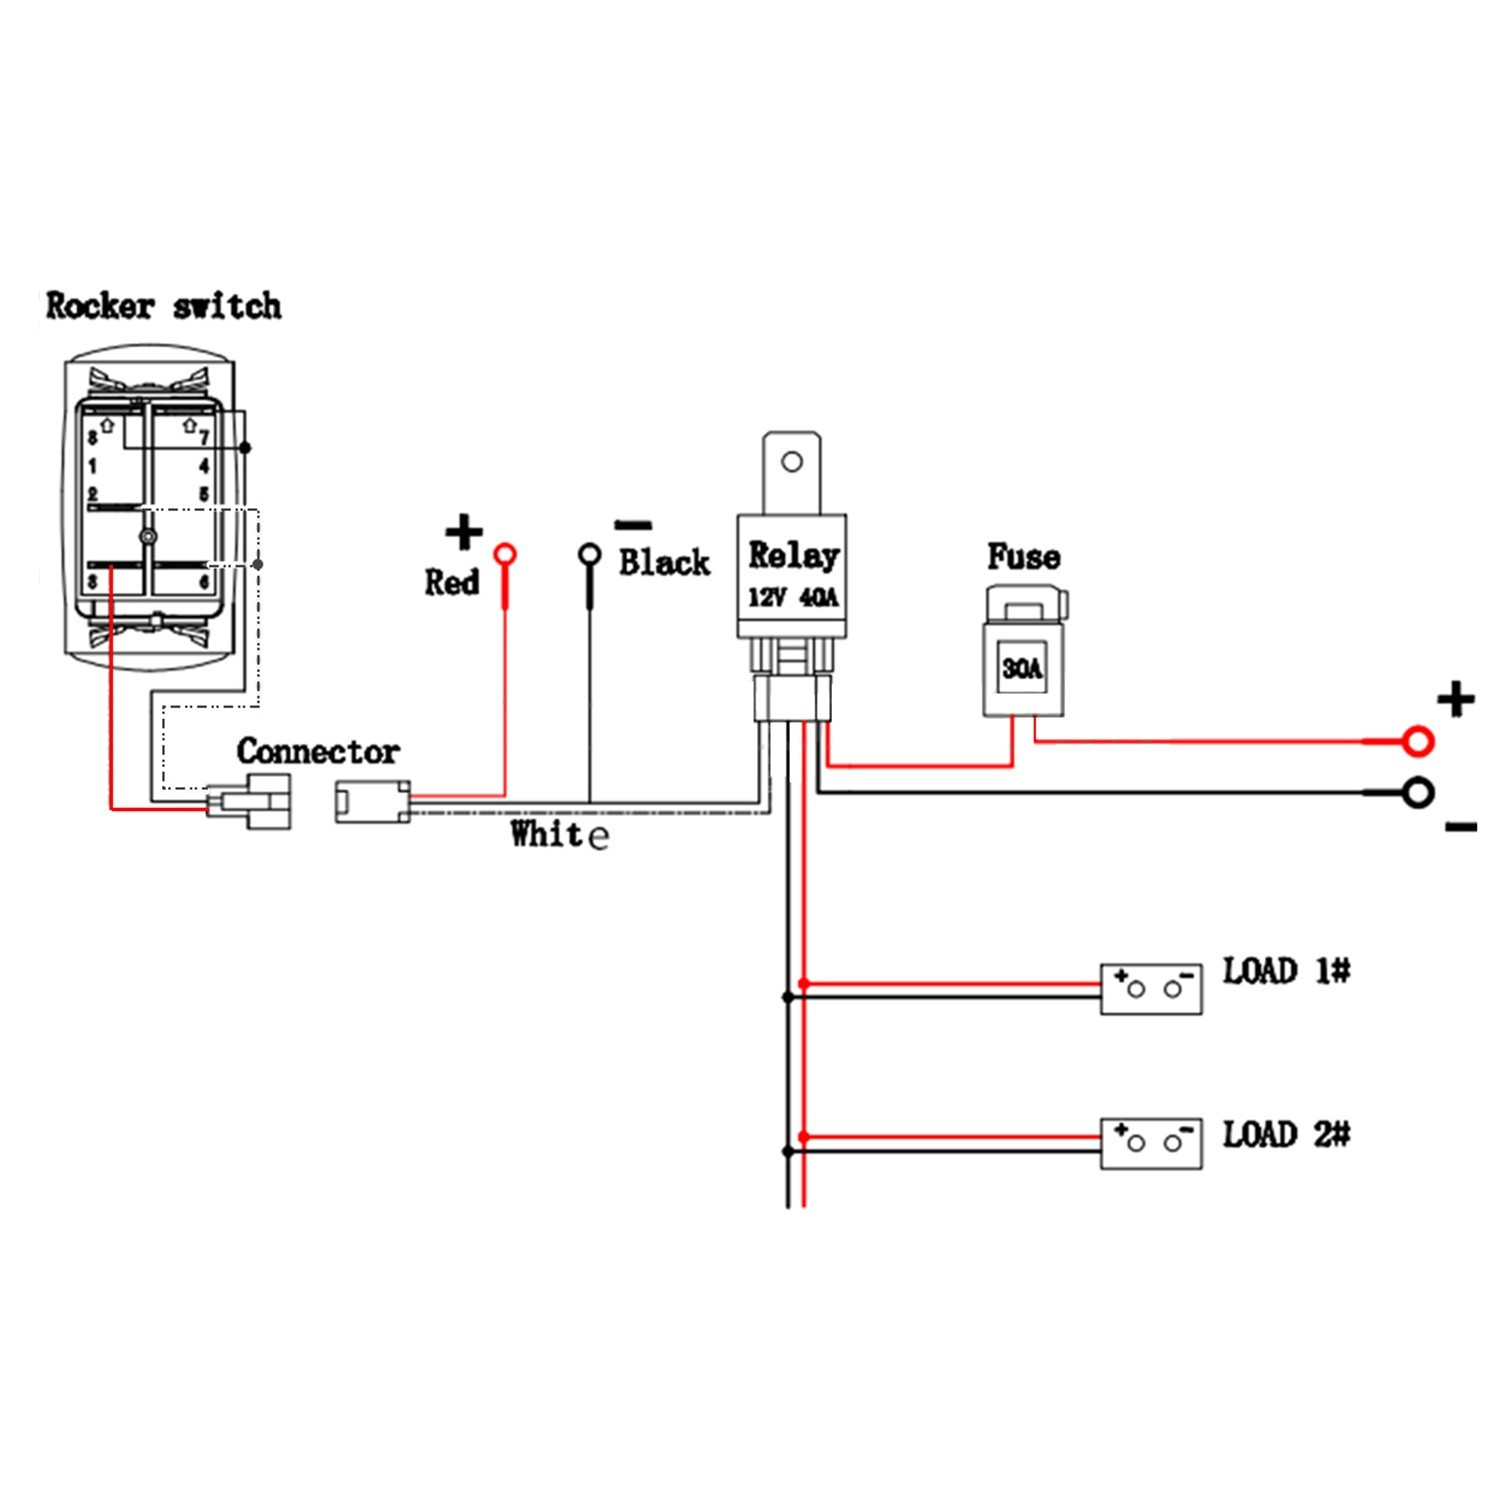 hight resolution of led wiring diagram with relay best light bar wire diagram teamninjaz me best techrush